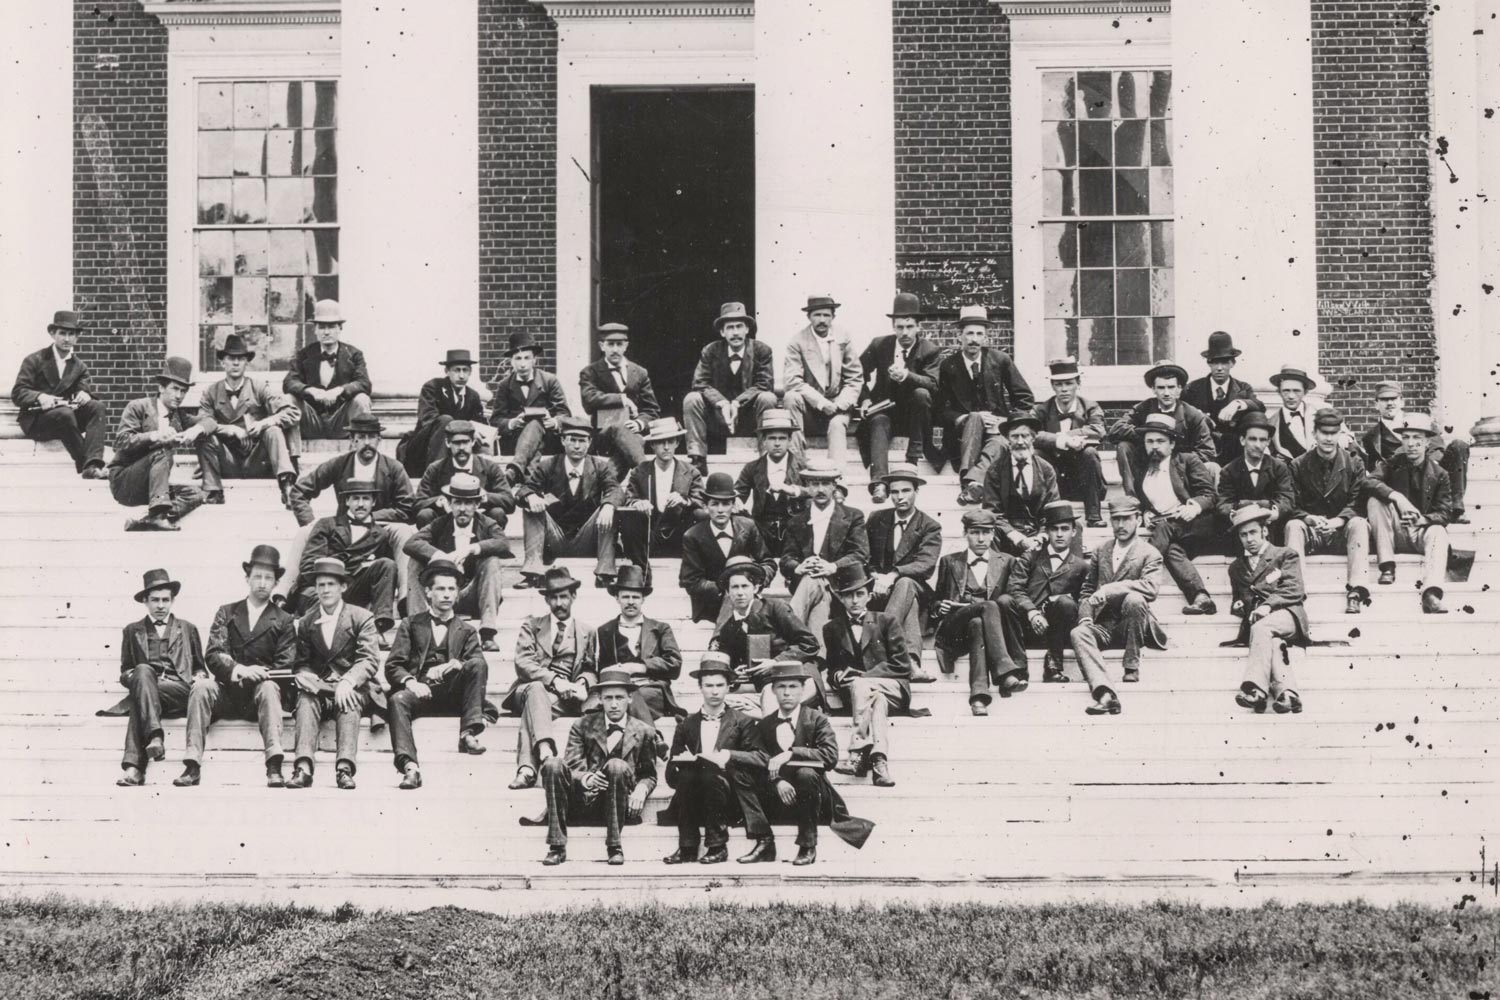 Students and faculty members pose for a photograph on the steps of the Rotunda. At front left is professor John Staige Davis, whose later death by gunshot on the Lawn would help inspire UVA's Honor System.